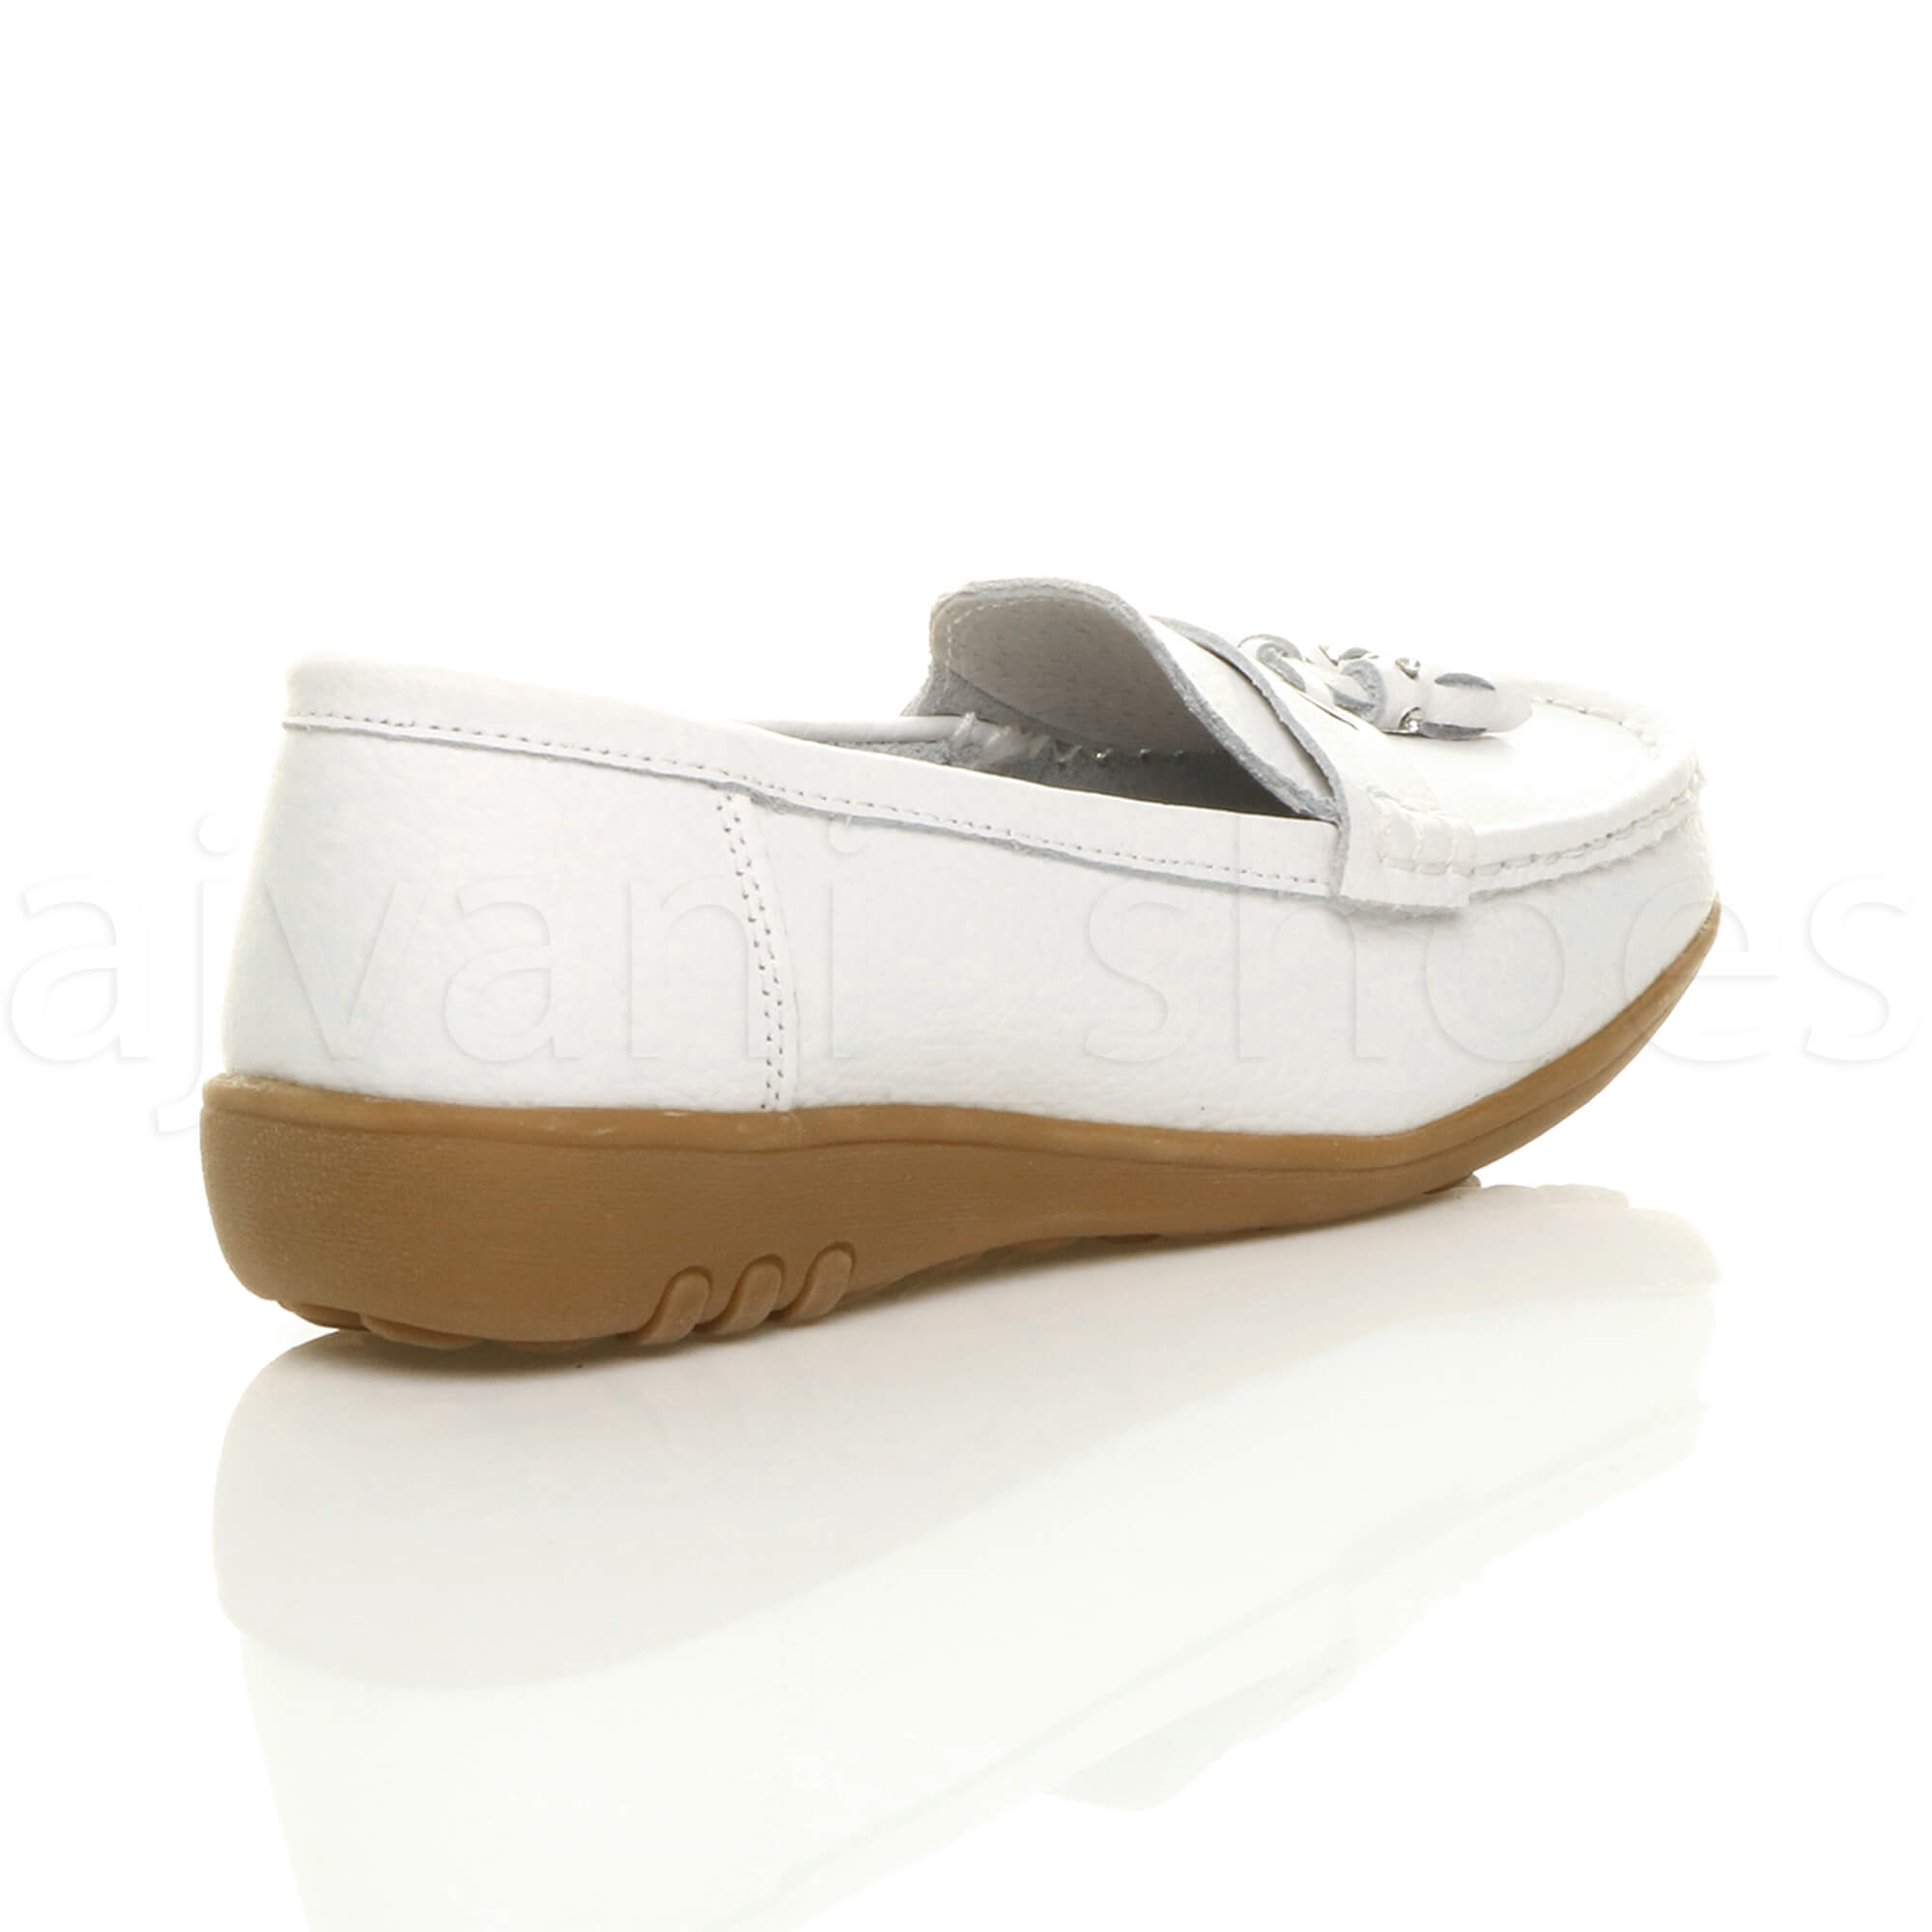 WOMENS-LADIES-LOW-HEEL-WEDGE-LEATHER-TASSEL-LOAFERS-COMFORT-MOCCASINS-SHOES-SIZE thumbnail 45